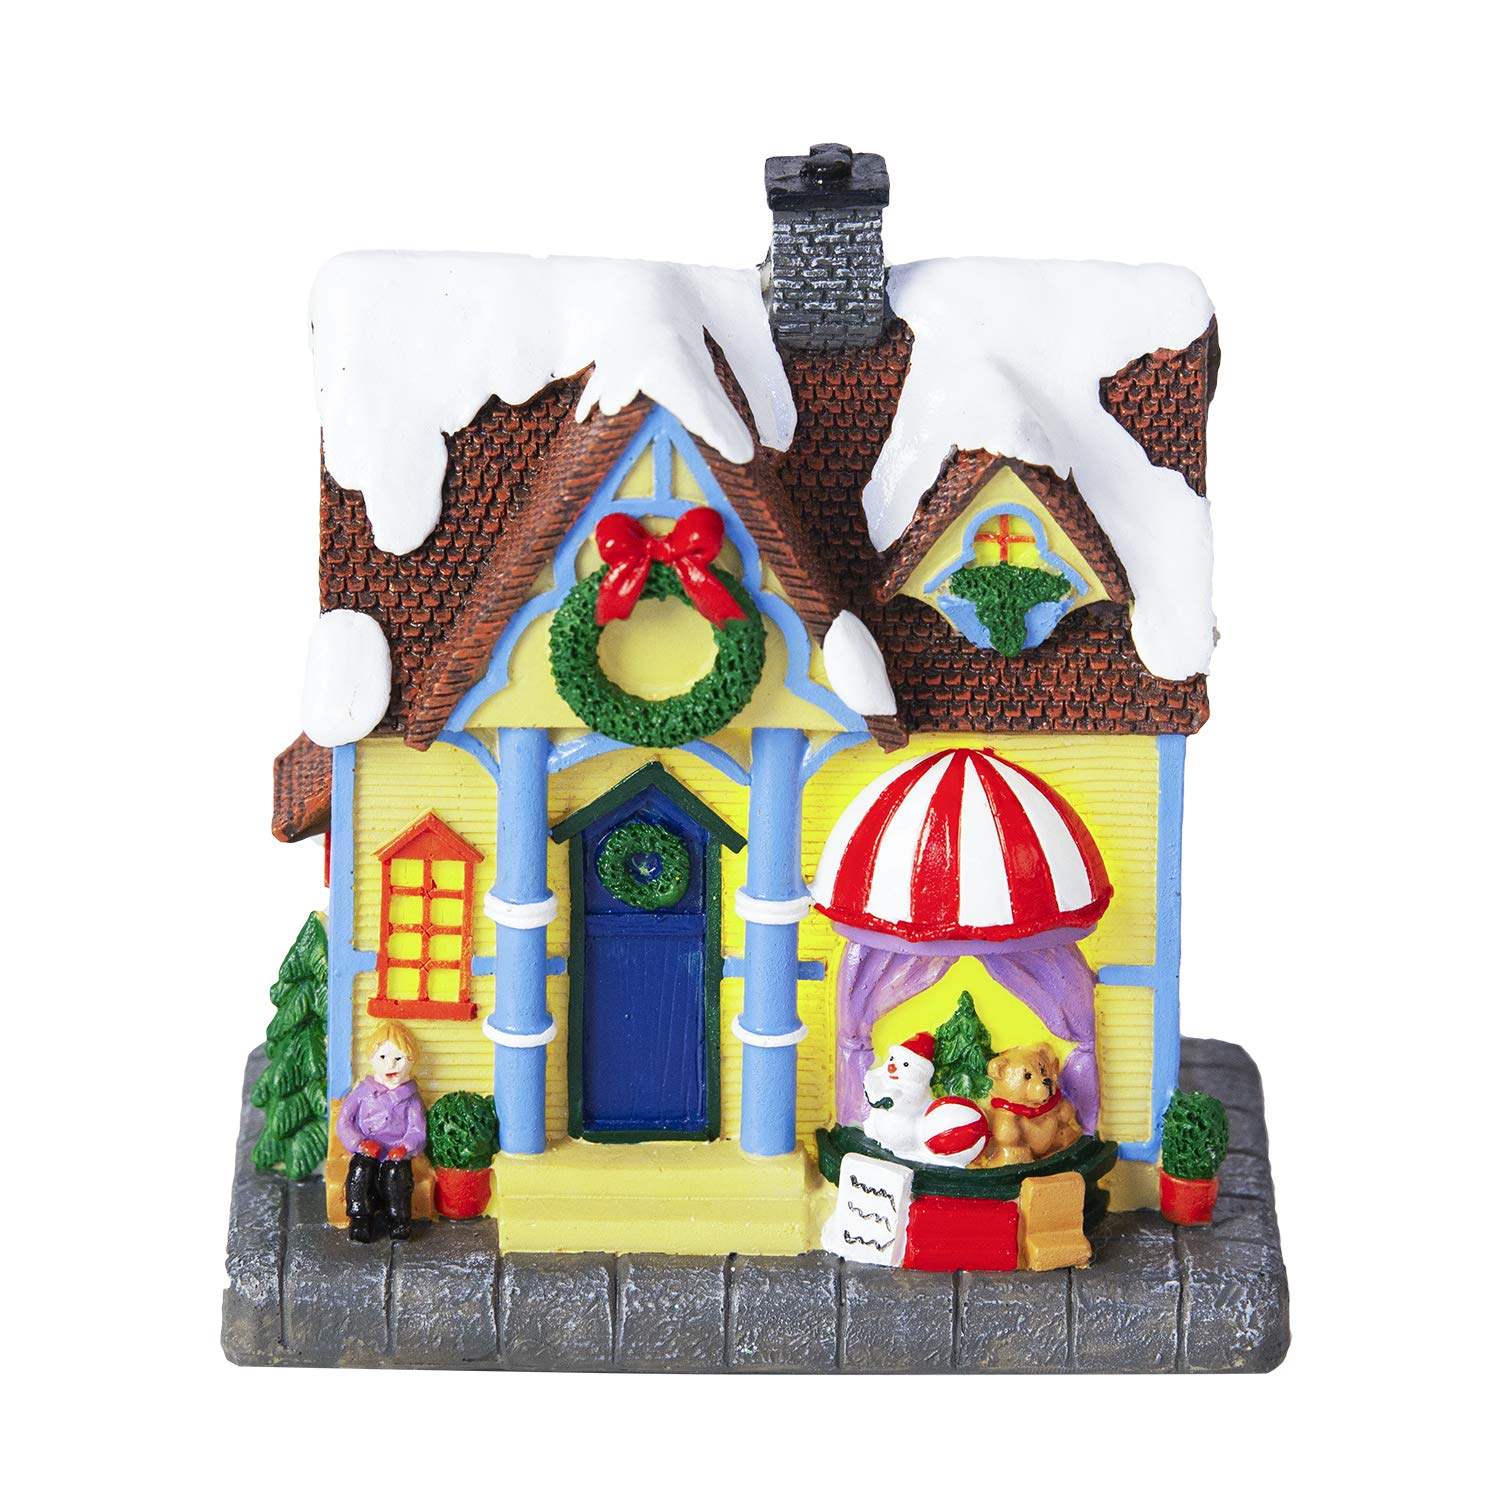 How To Store Christmas Village Houses.Amazon Com Innodept12 Store House Christmas Village With